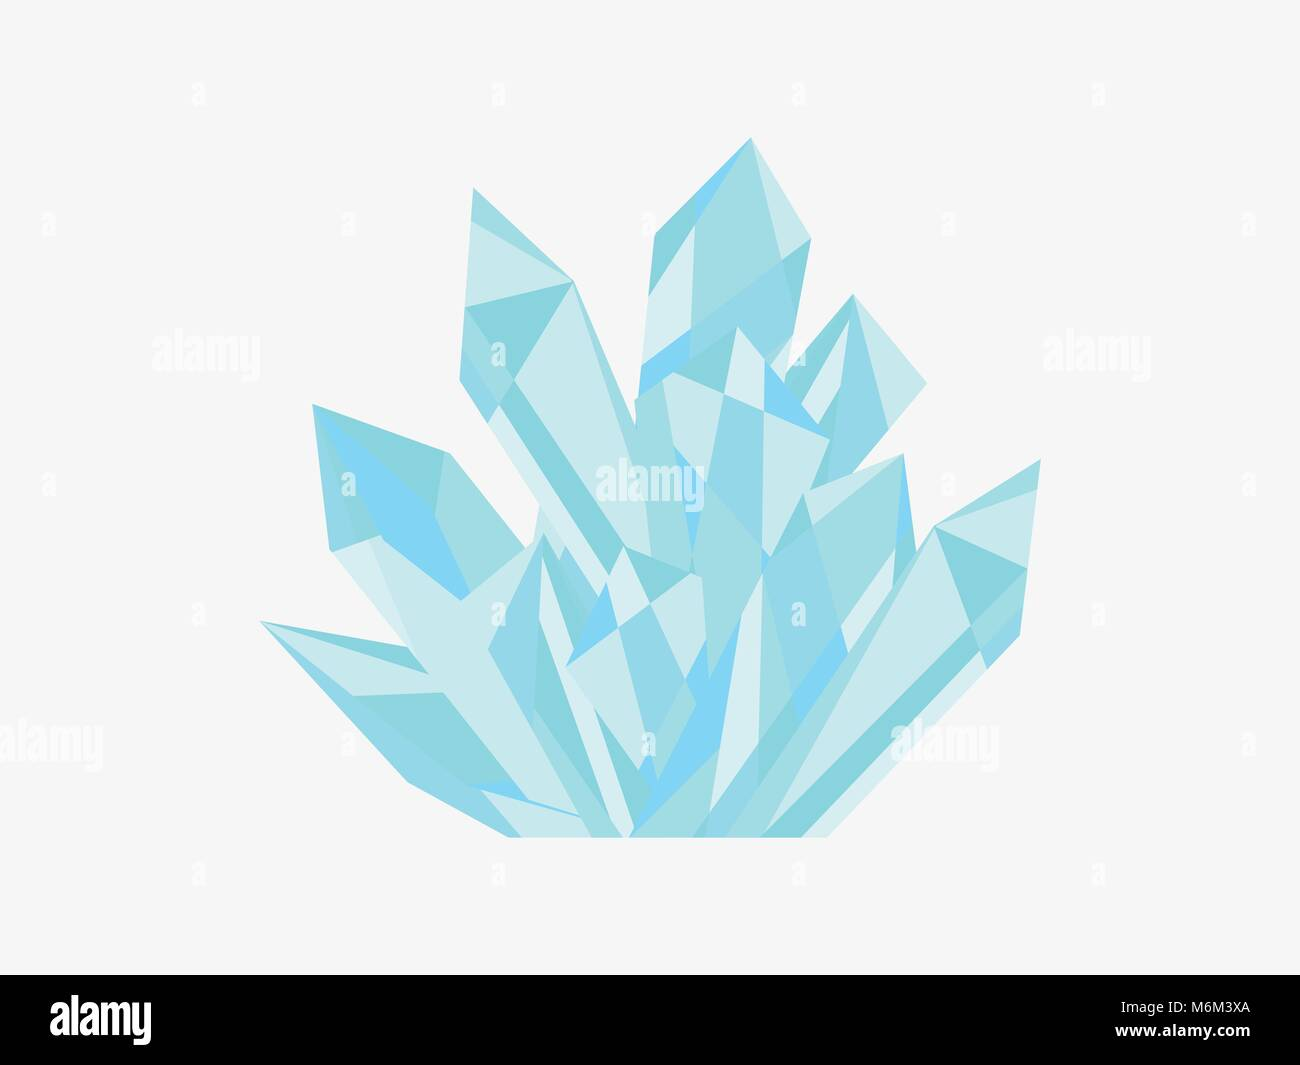 Crystal isolated on white background. Minerals, design elements. A precious stone, polygons. Vector illustration - Stock Vector